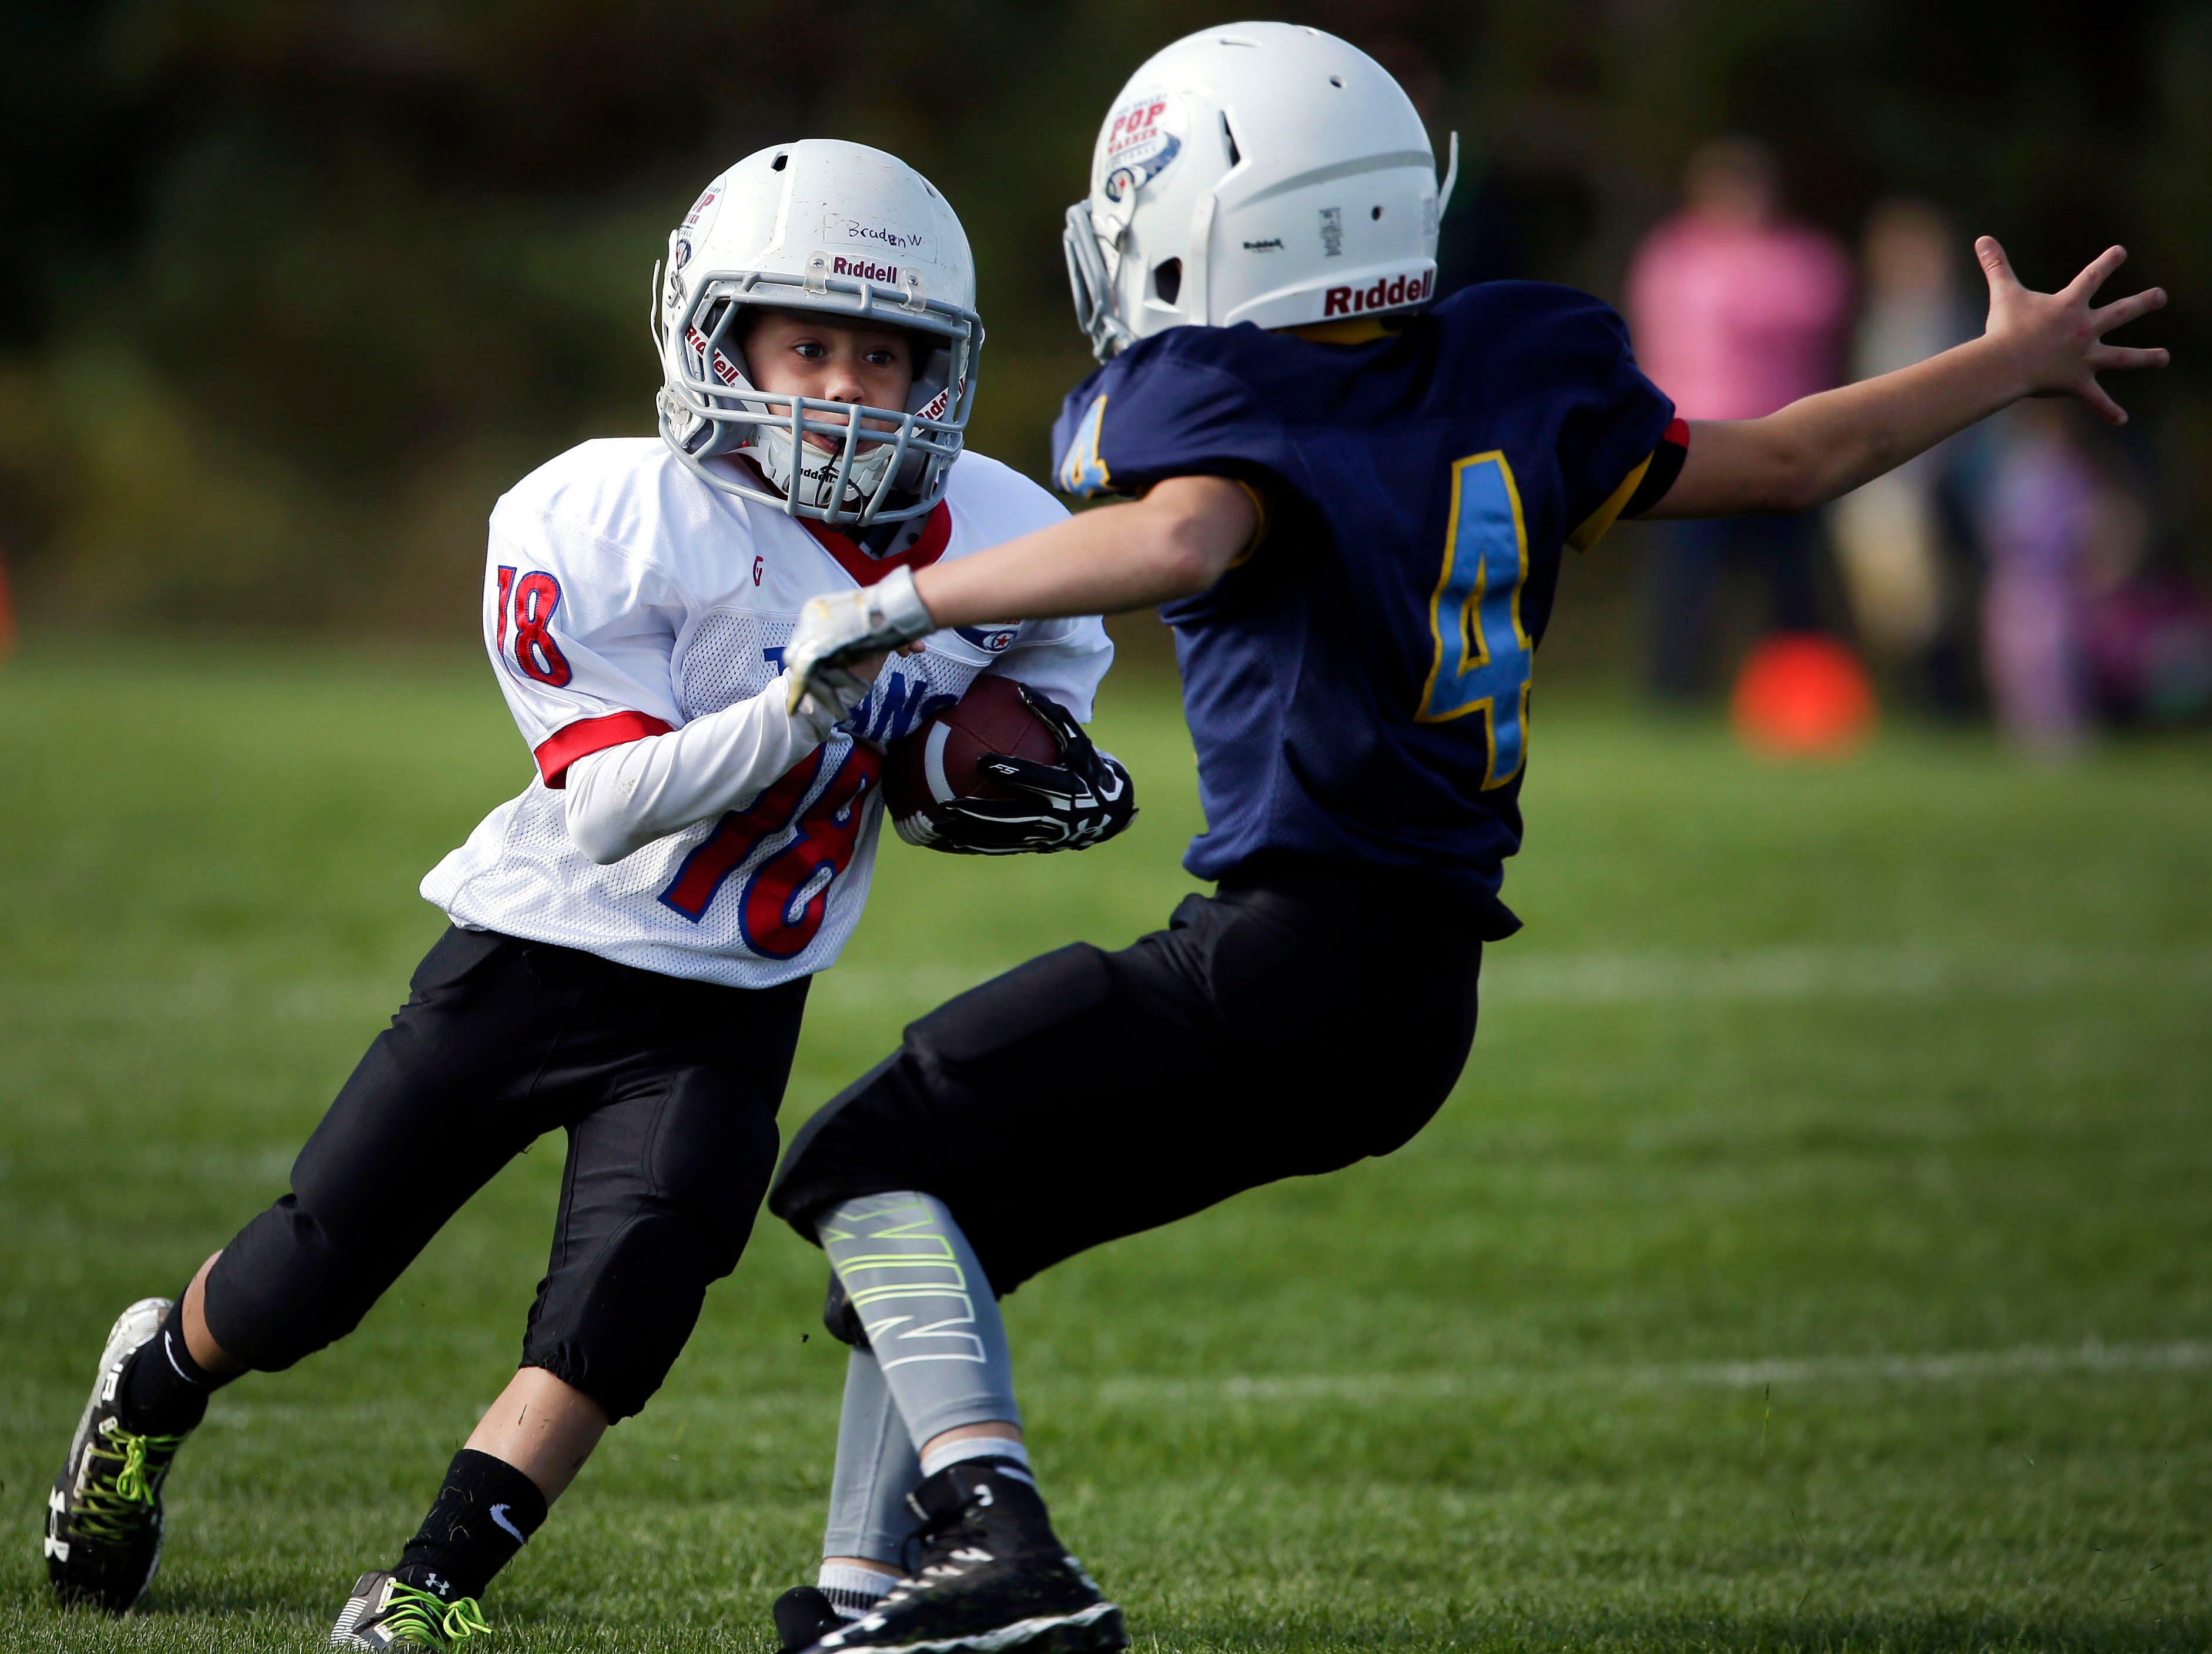 Braden Wills of the Titans cuts against defender Greyson Peters of the Pioneers as Fox Valley Pop Warner Football opens the season Saturday, September 8, 2018, at Plamann Park in Grand Chute, Wis.Ron Page/USA TODAY NETWORK-Wisconsin